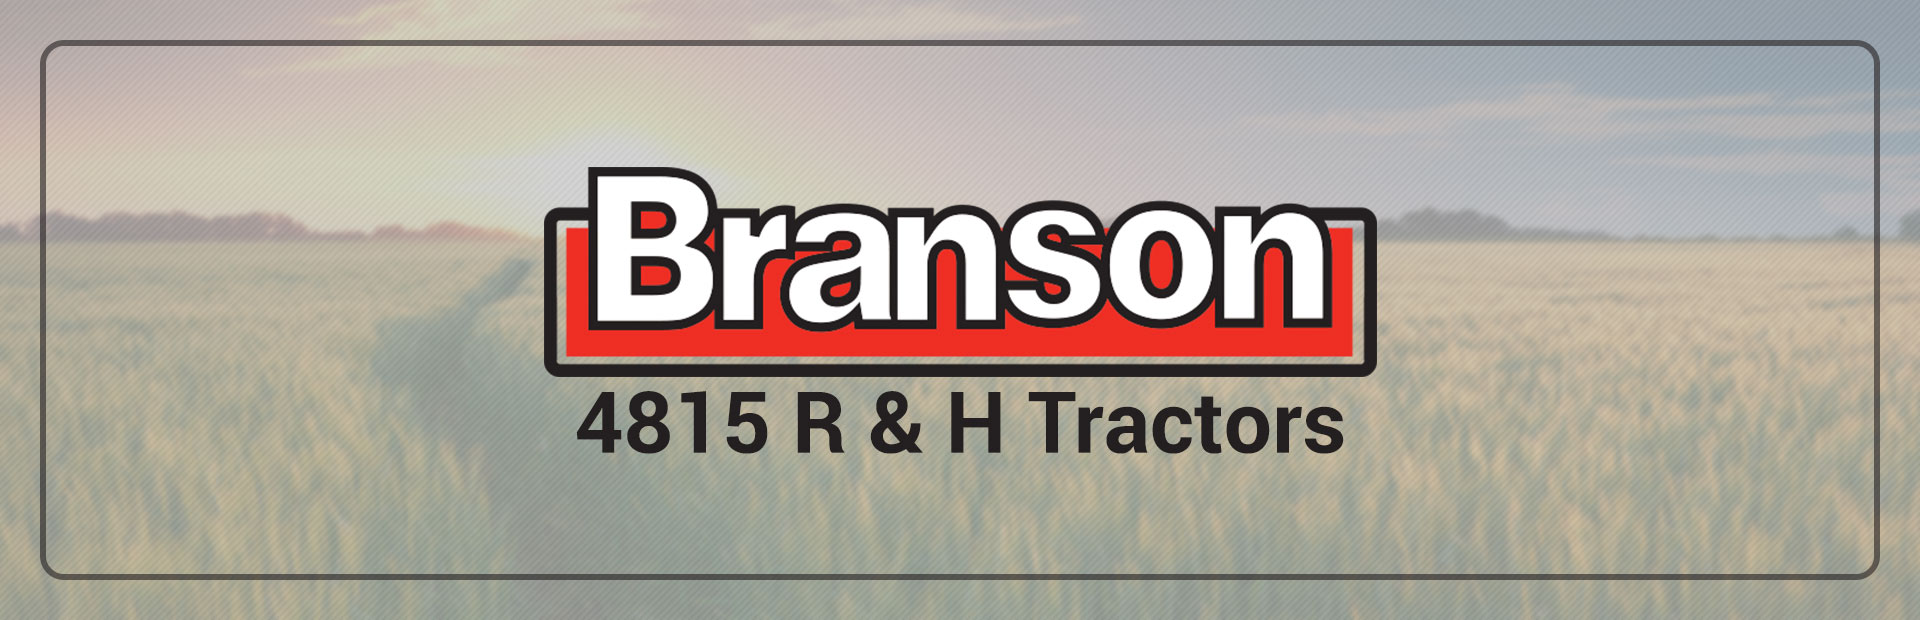 We carry Branson 4815 R and H tractors! Click here to view the 2018 Branson 4815R 47 HP 4x4 with Loader.